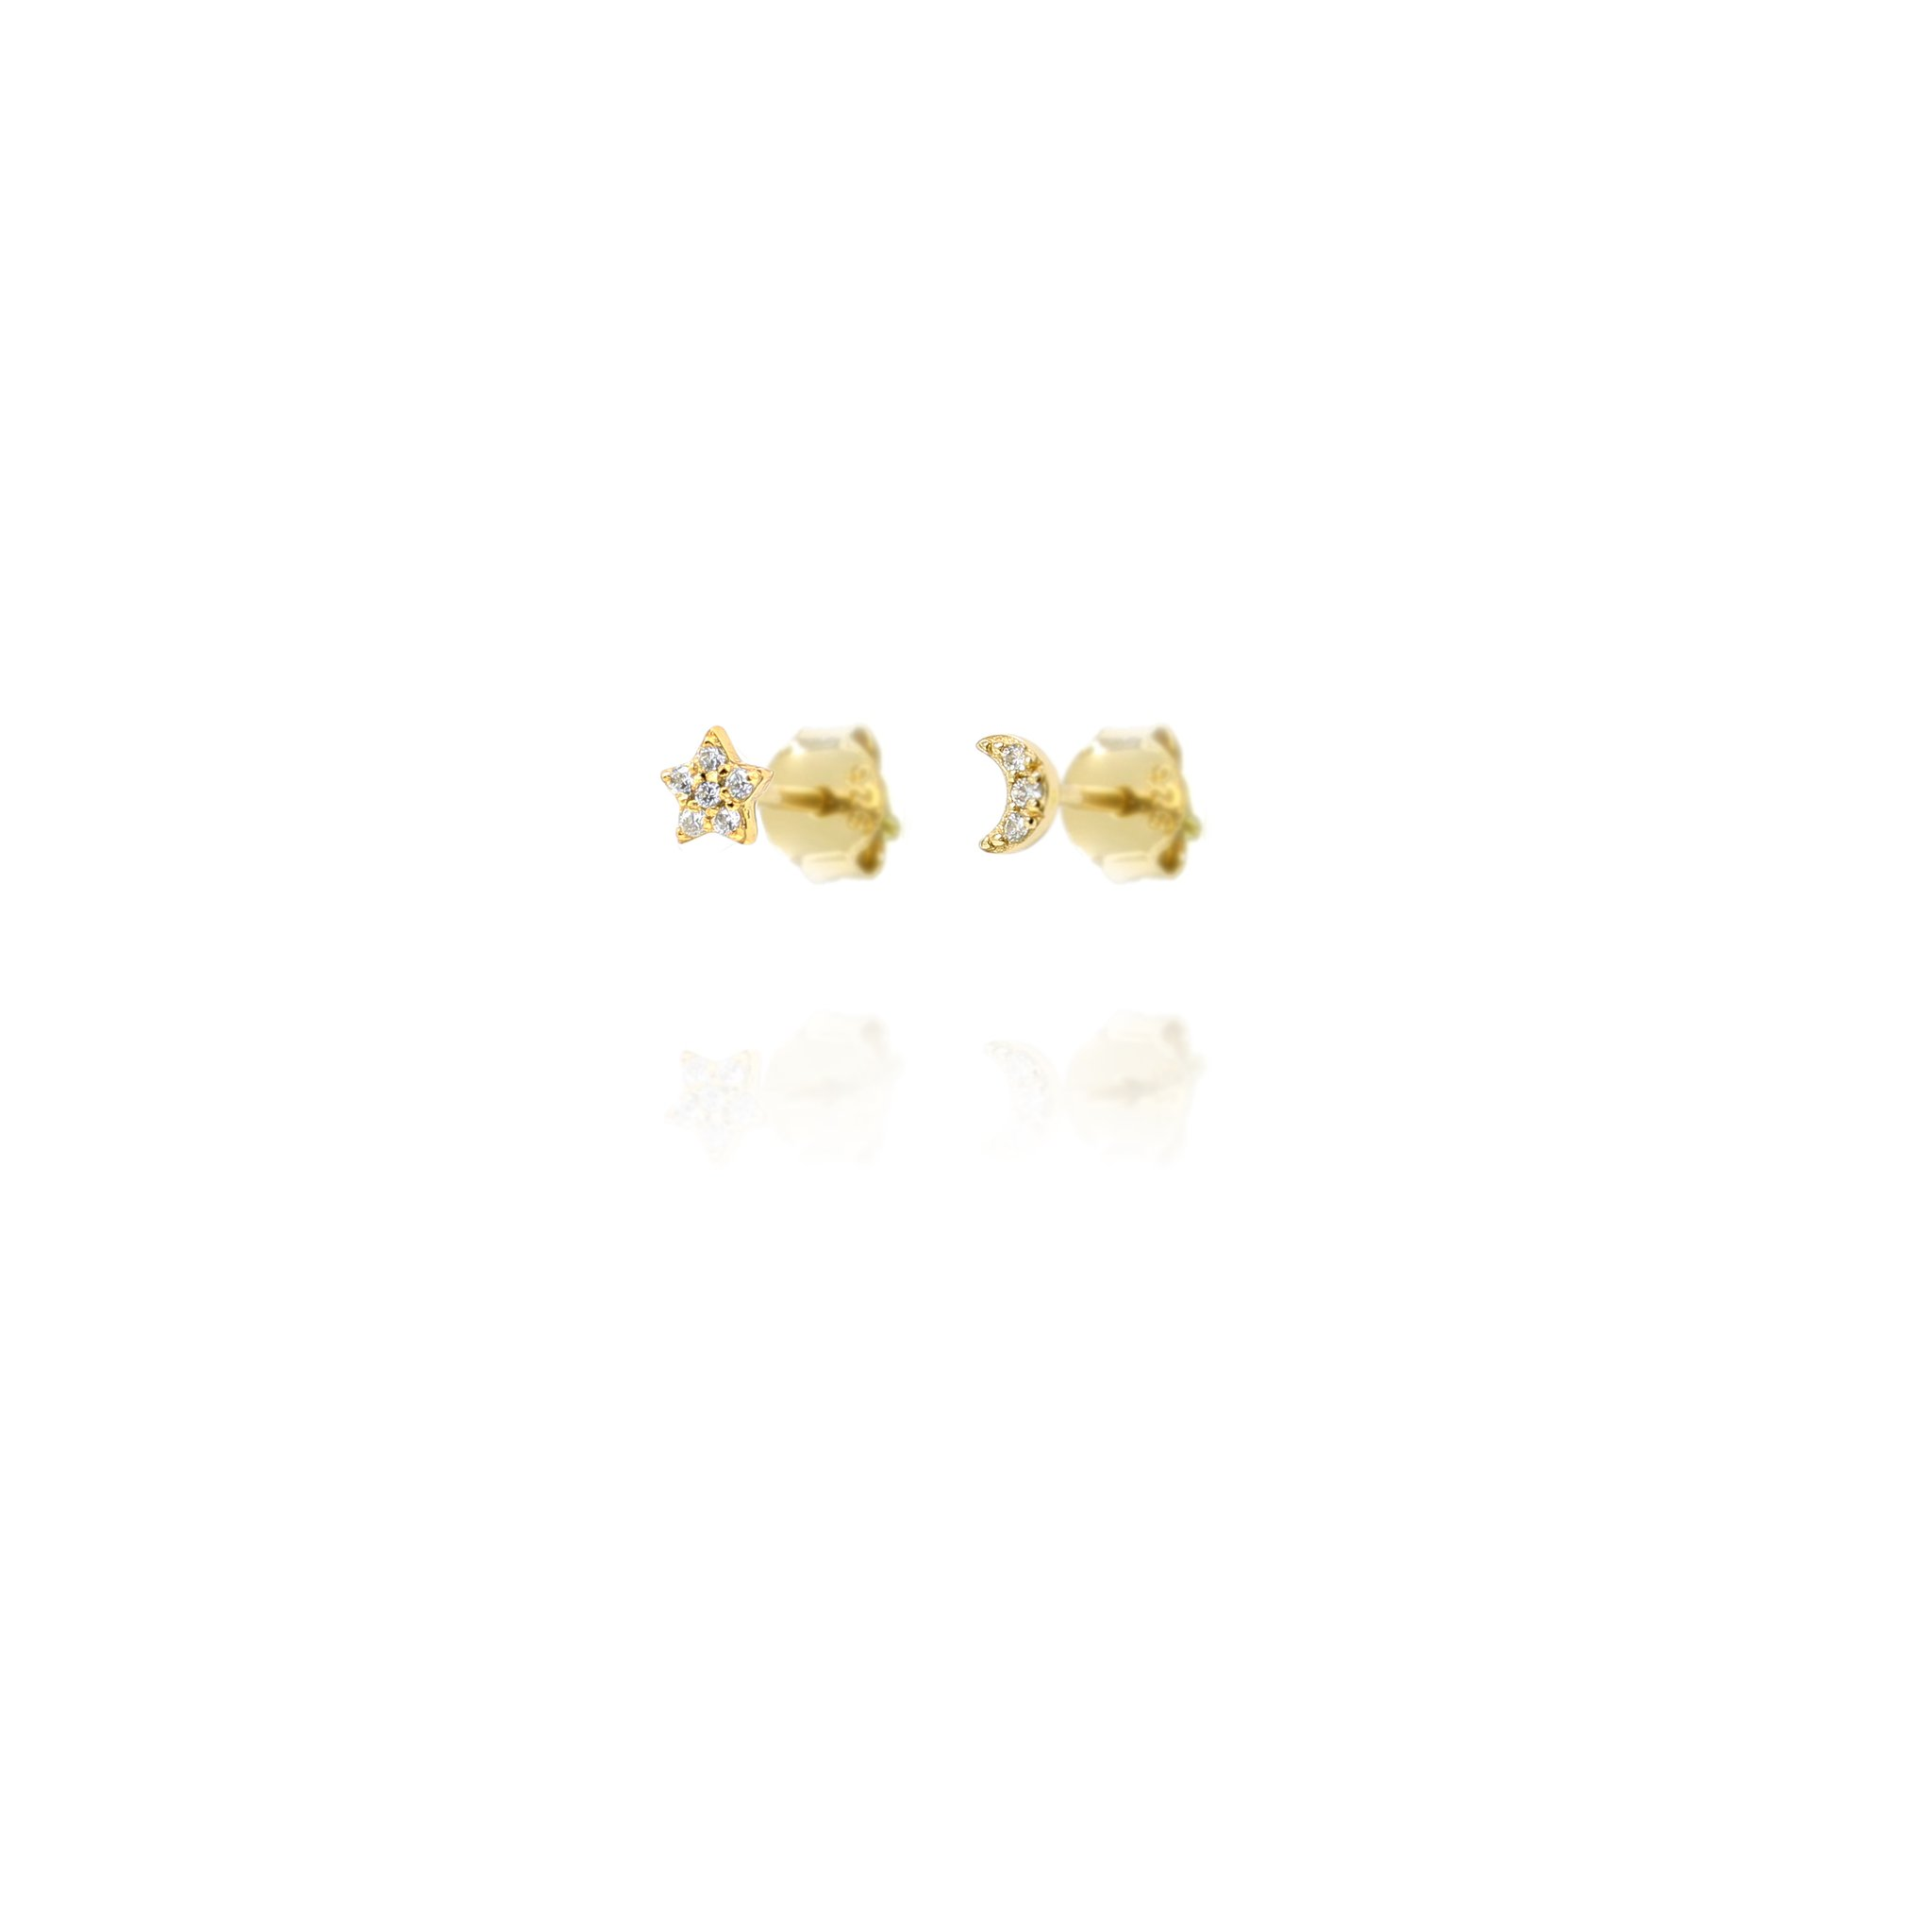 Stud Earrings Sparkly Star & Moon - Gold Plate on Sterling Silver EG7/G